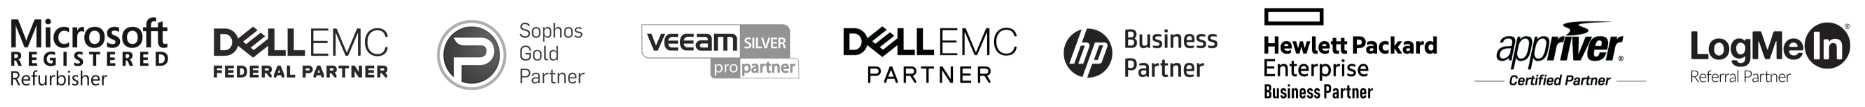 partner-logo-banner-bottom.png